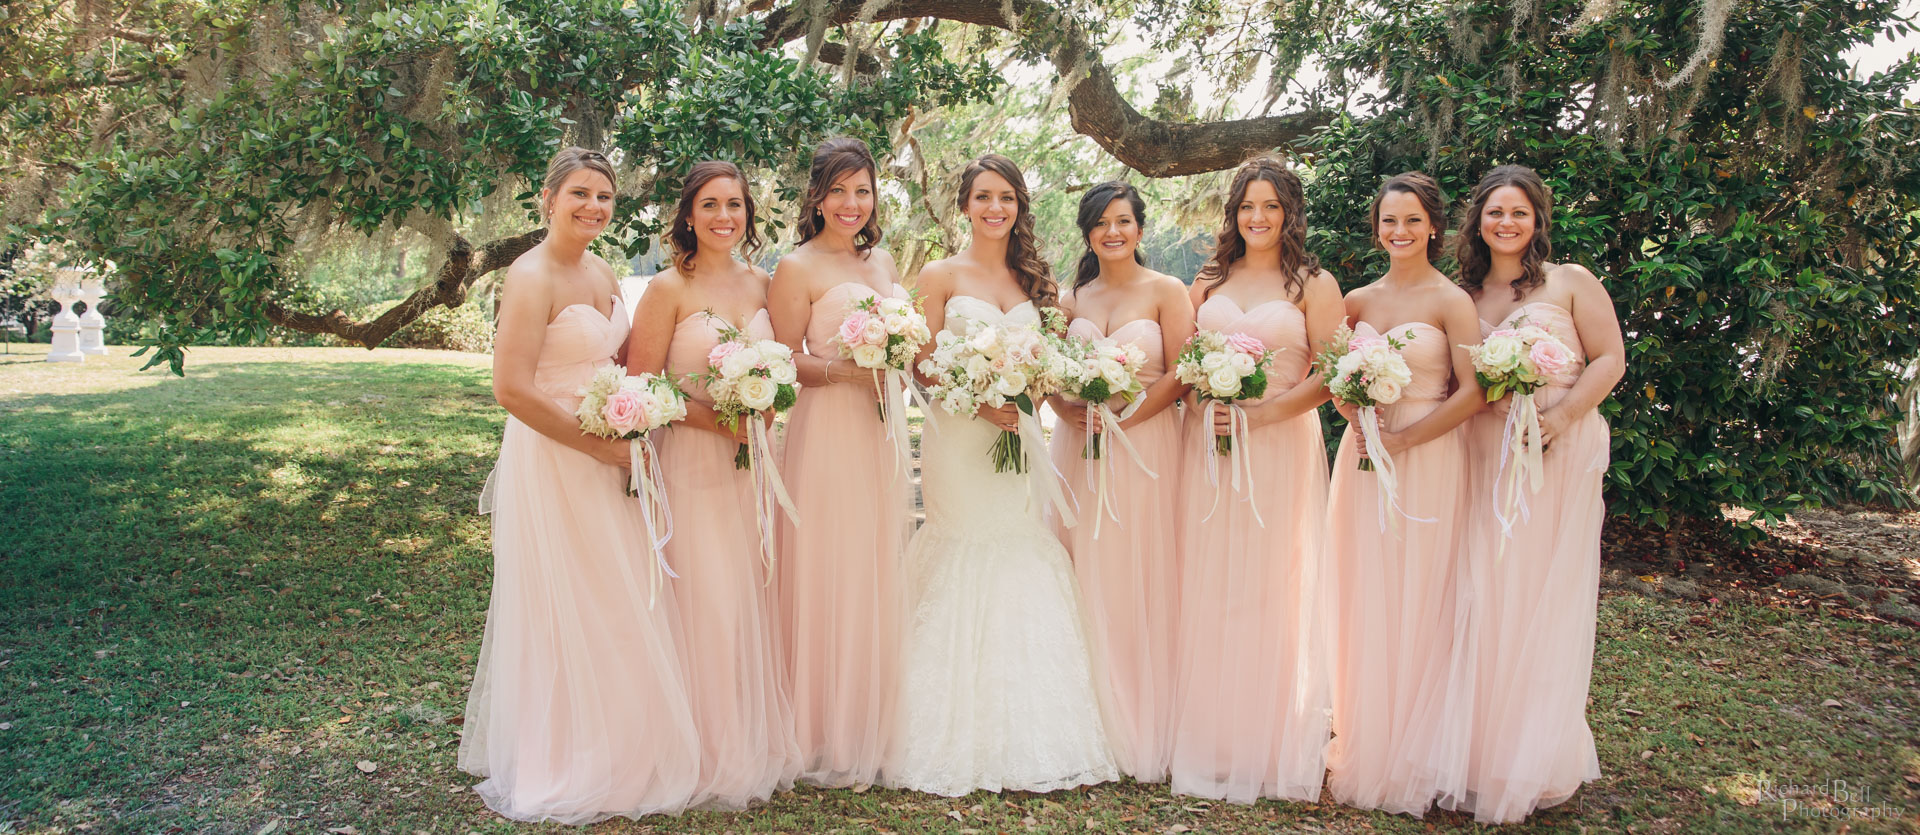 Alissa and Bridemaids